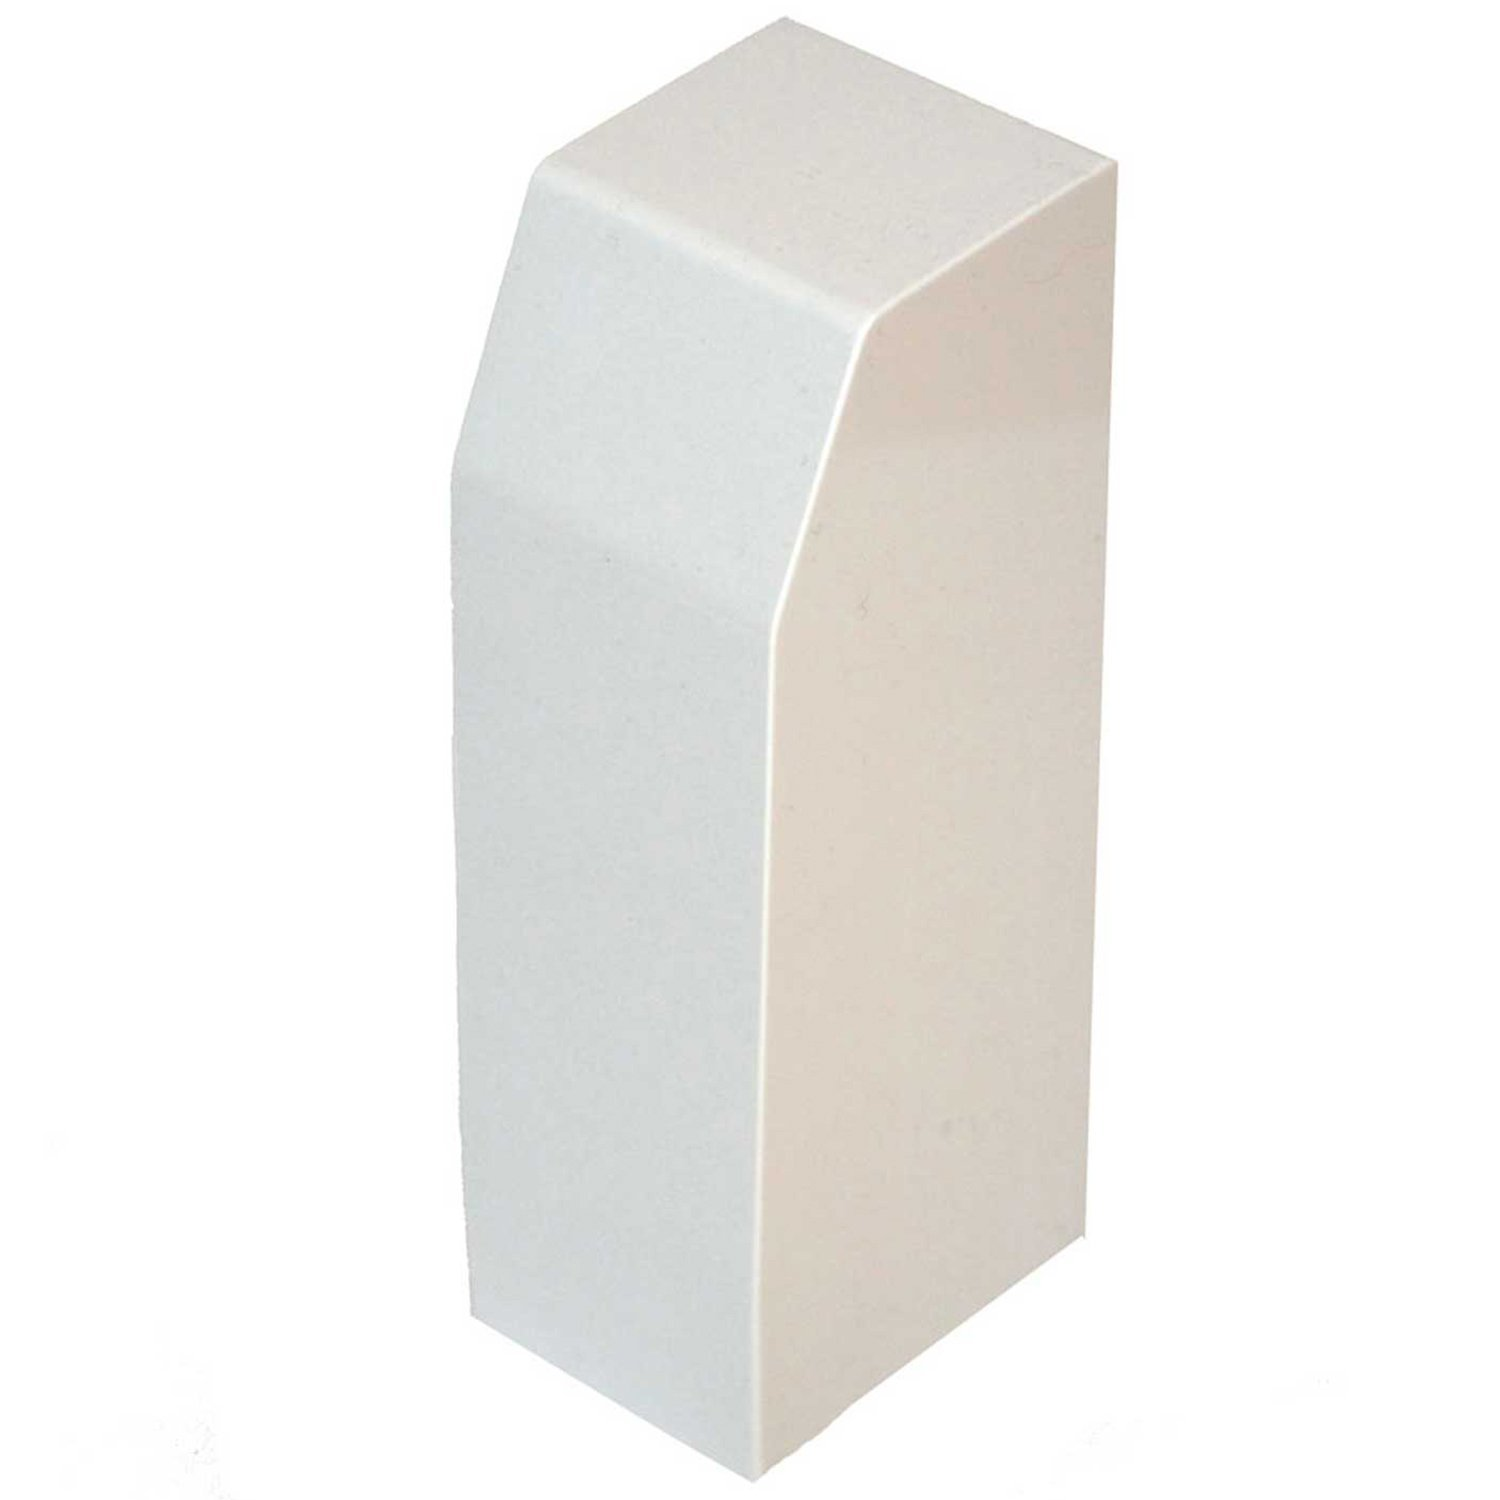 Neat Heat Baseboard Covers Right End Cap, Bright by Neat Heat Baseboard Covers